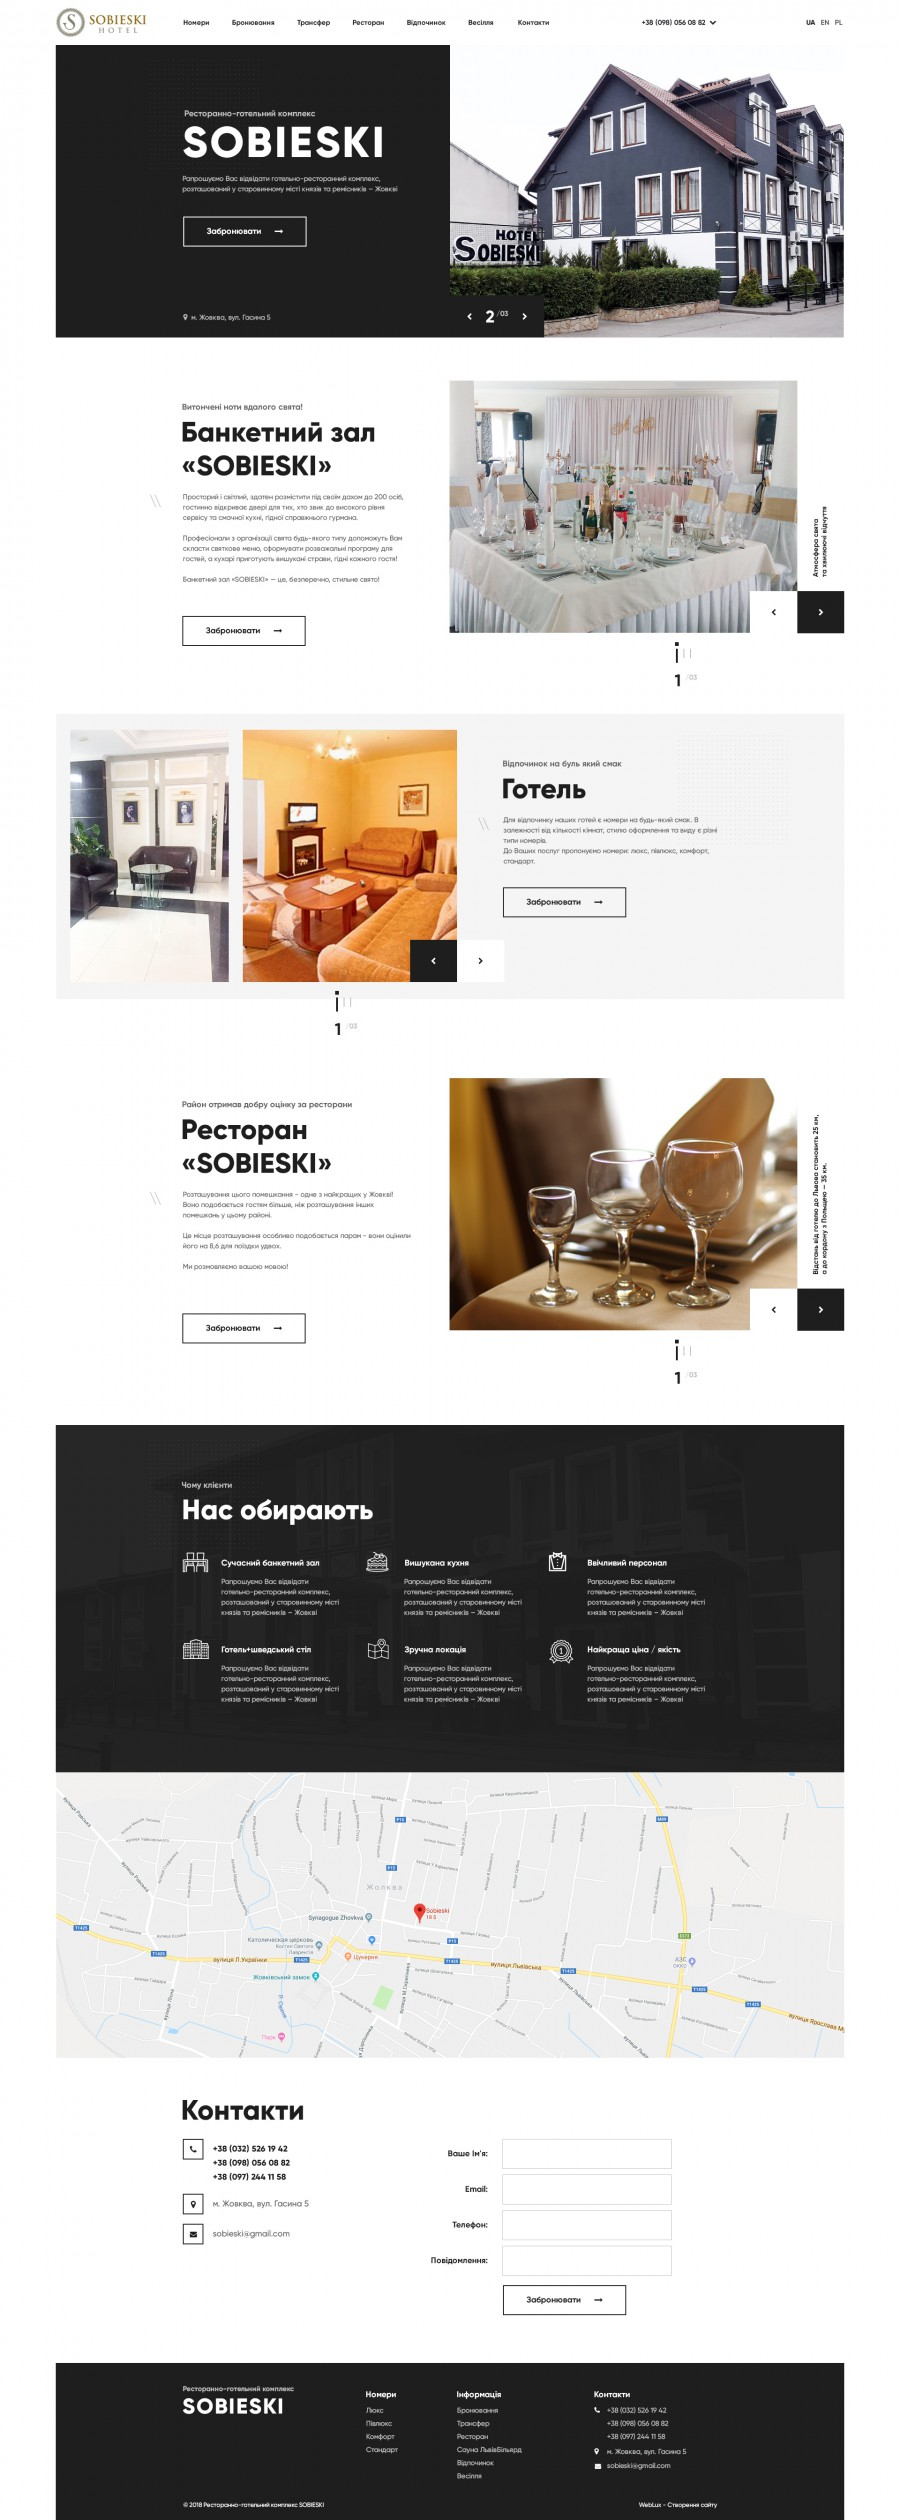 Website development of hotel and restaurant complex «SOBIESKI», Zhovkva